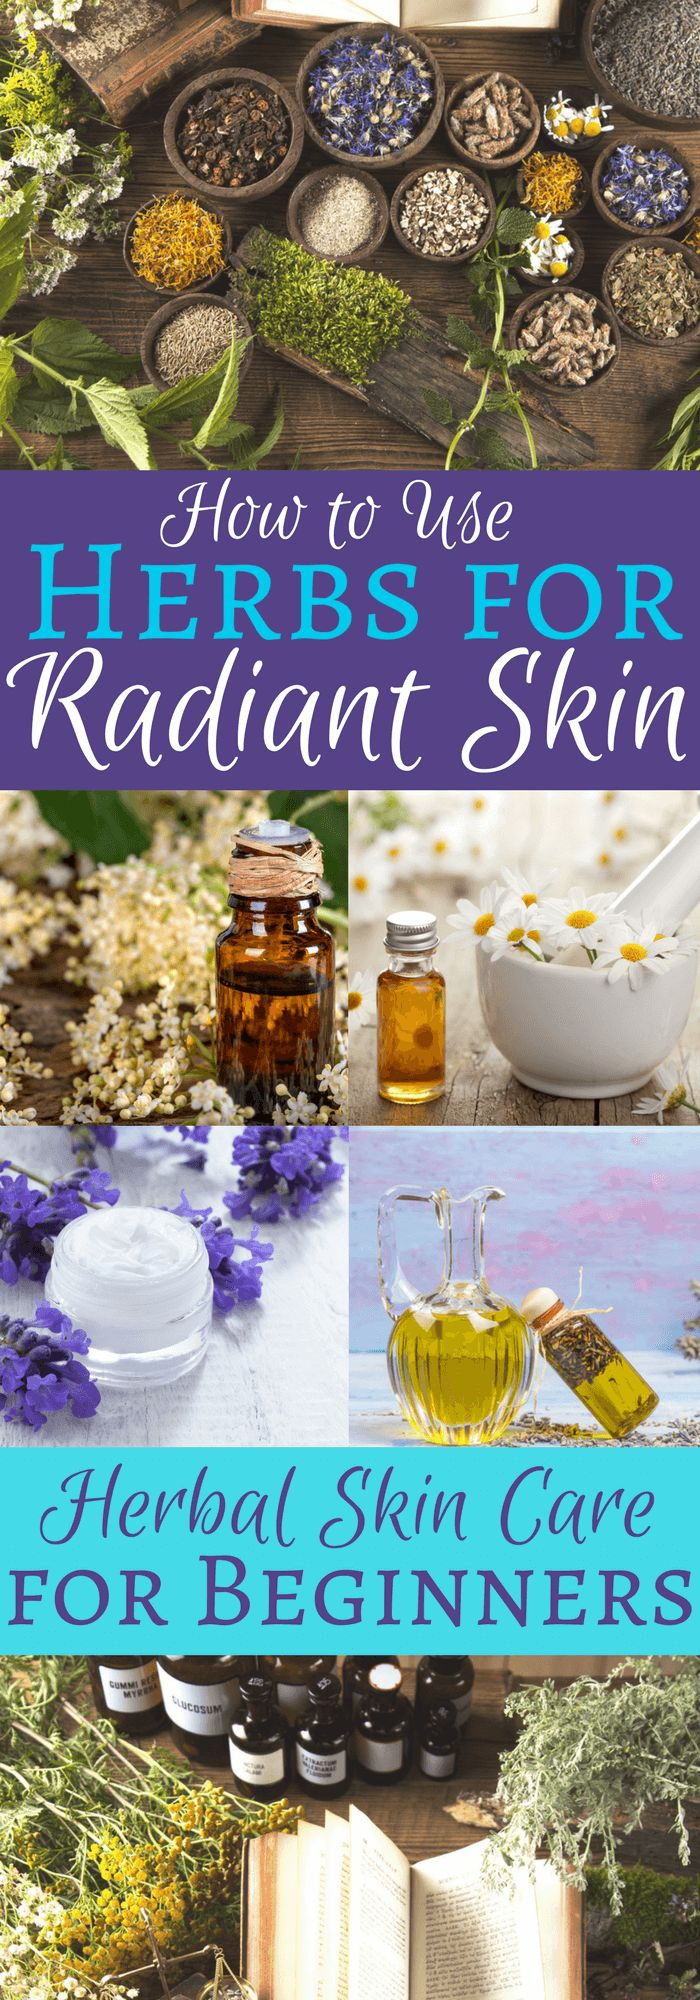 Herbal Skin Care for Beginners: How to Use Herbs in Your Skin Care Routine for Radiant, Younger Looking Skin!